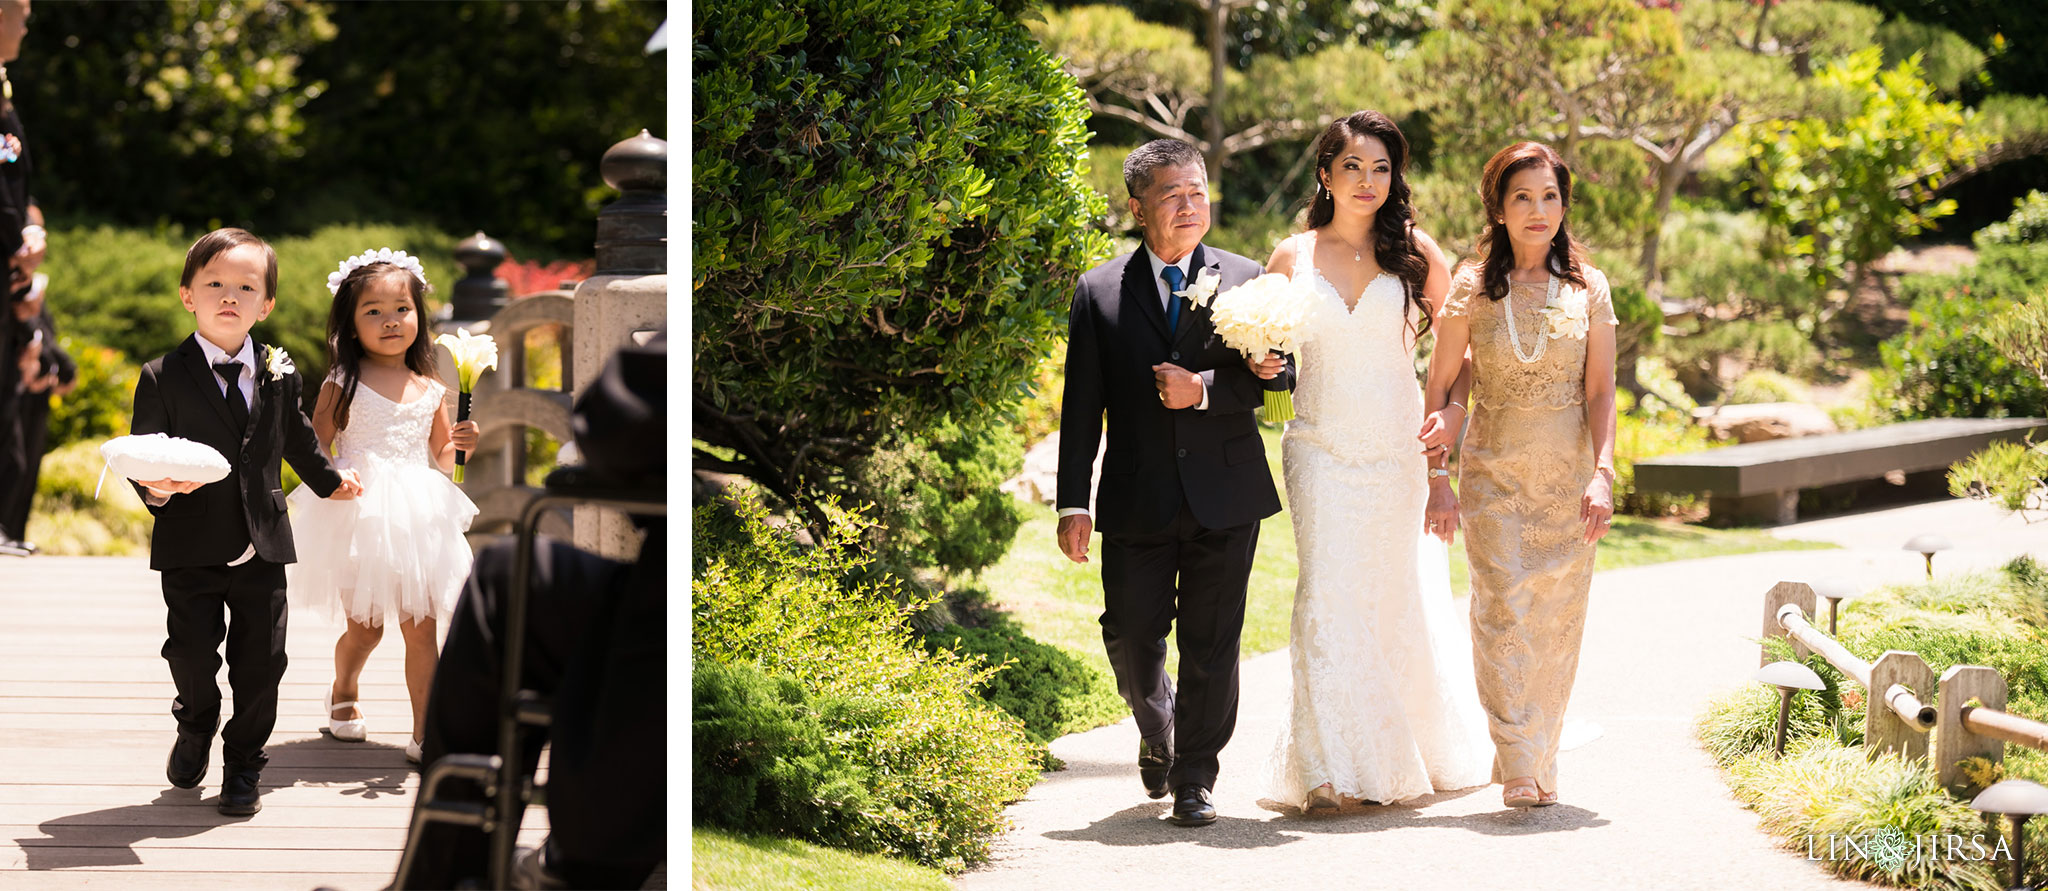 16 earl burns miller japanese gardens long beach wedding ceremony photography